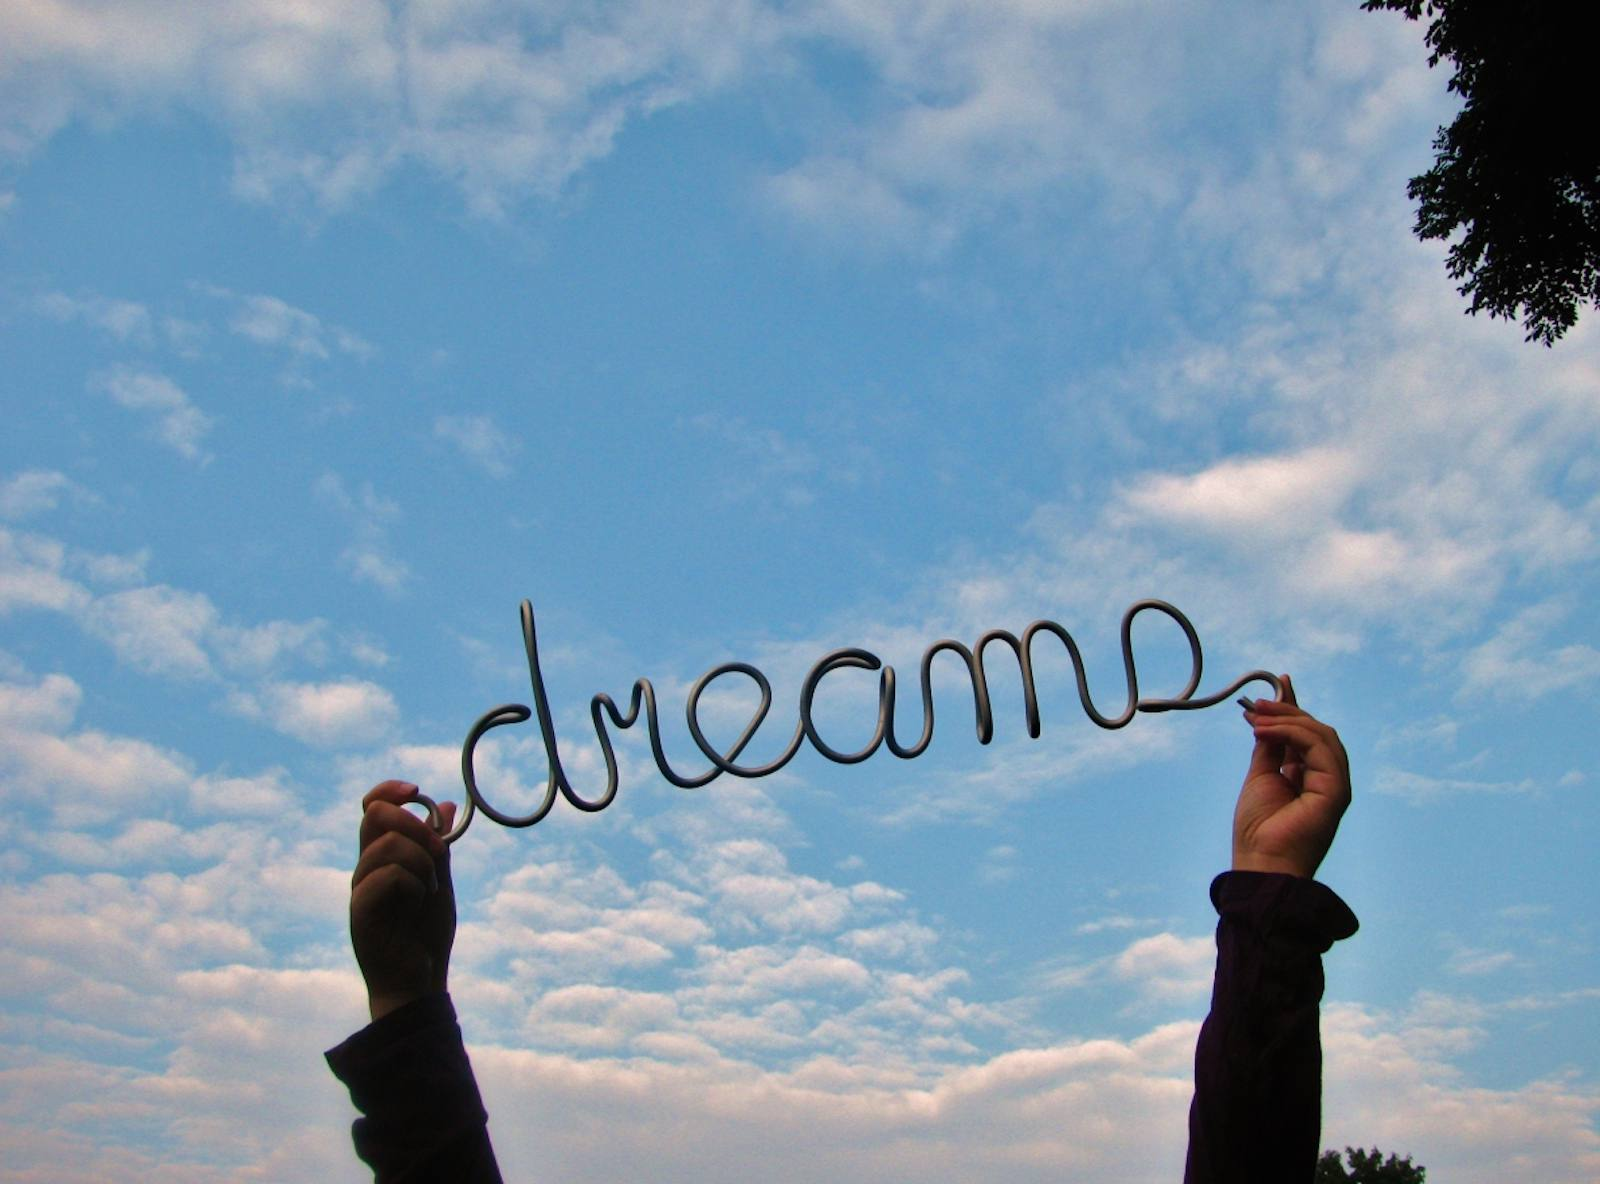 Dreams, Their Meanings and Interpretations